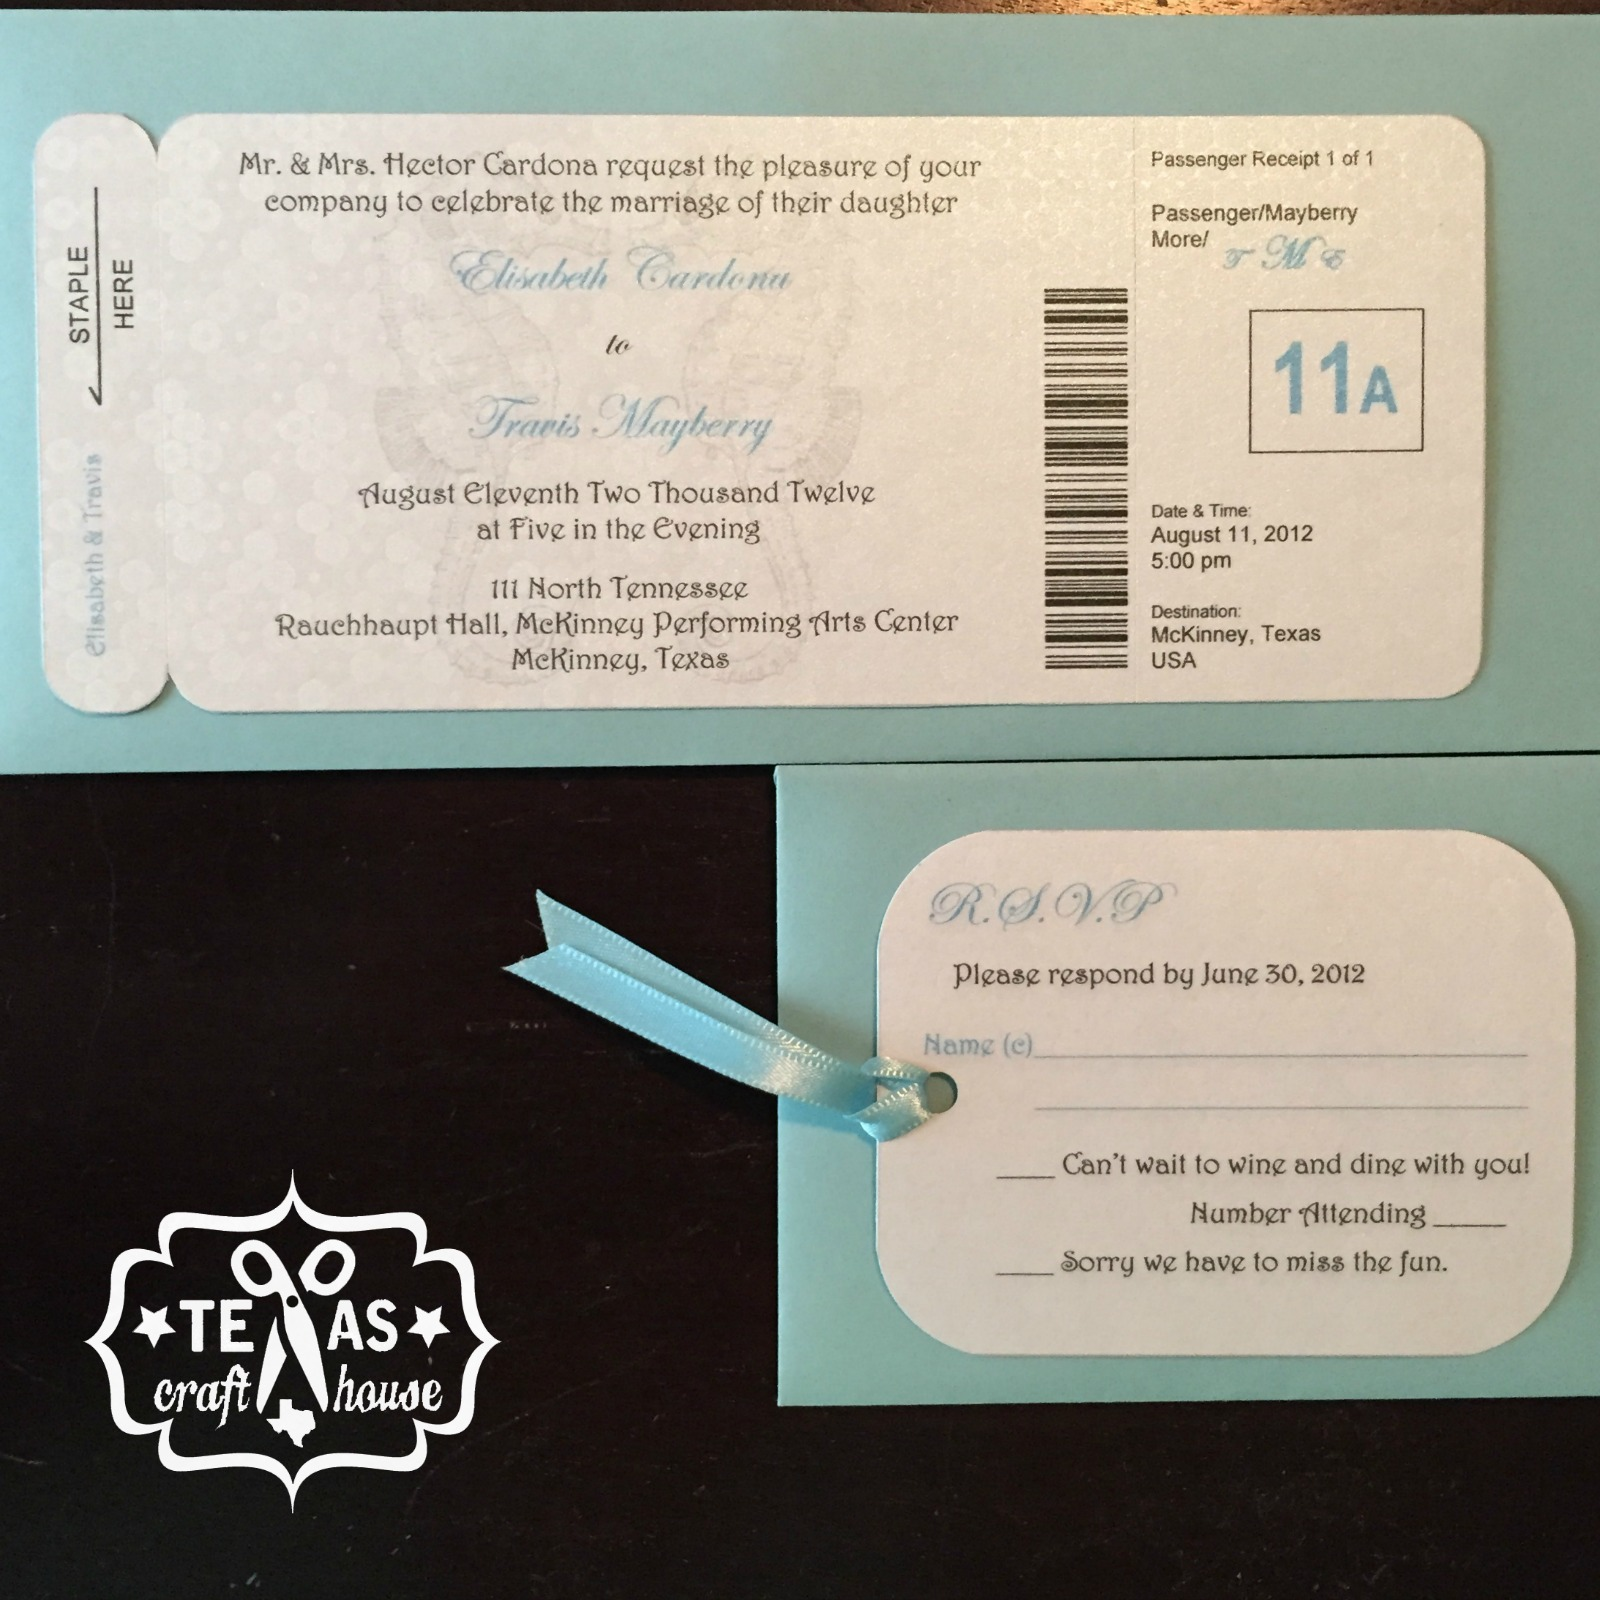 texas craft house save money by making your own wedding invitations - How To Print Your Own Wedding Invitations